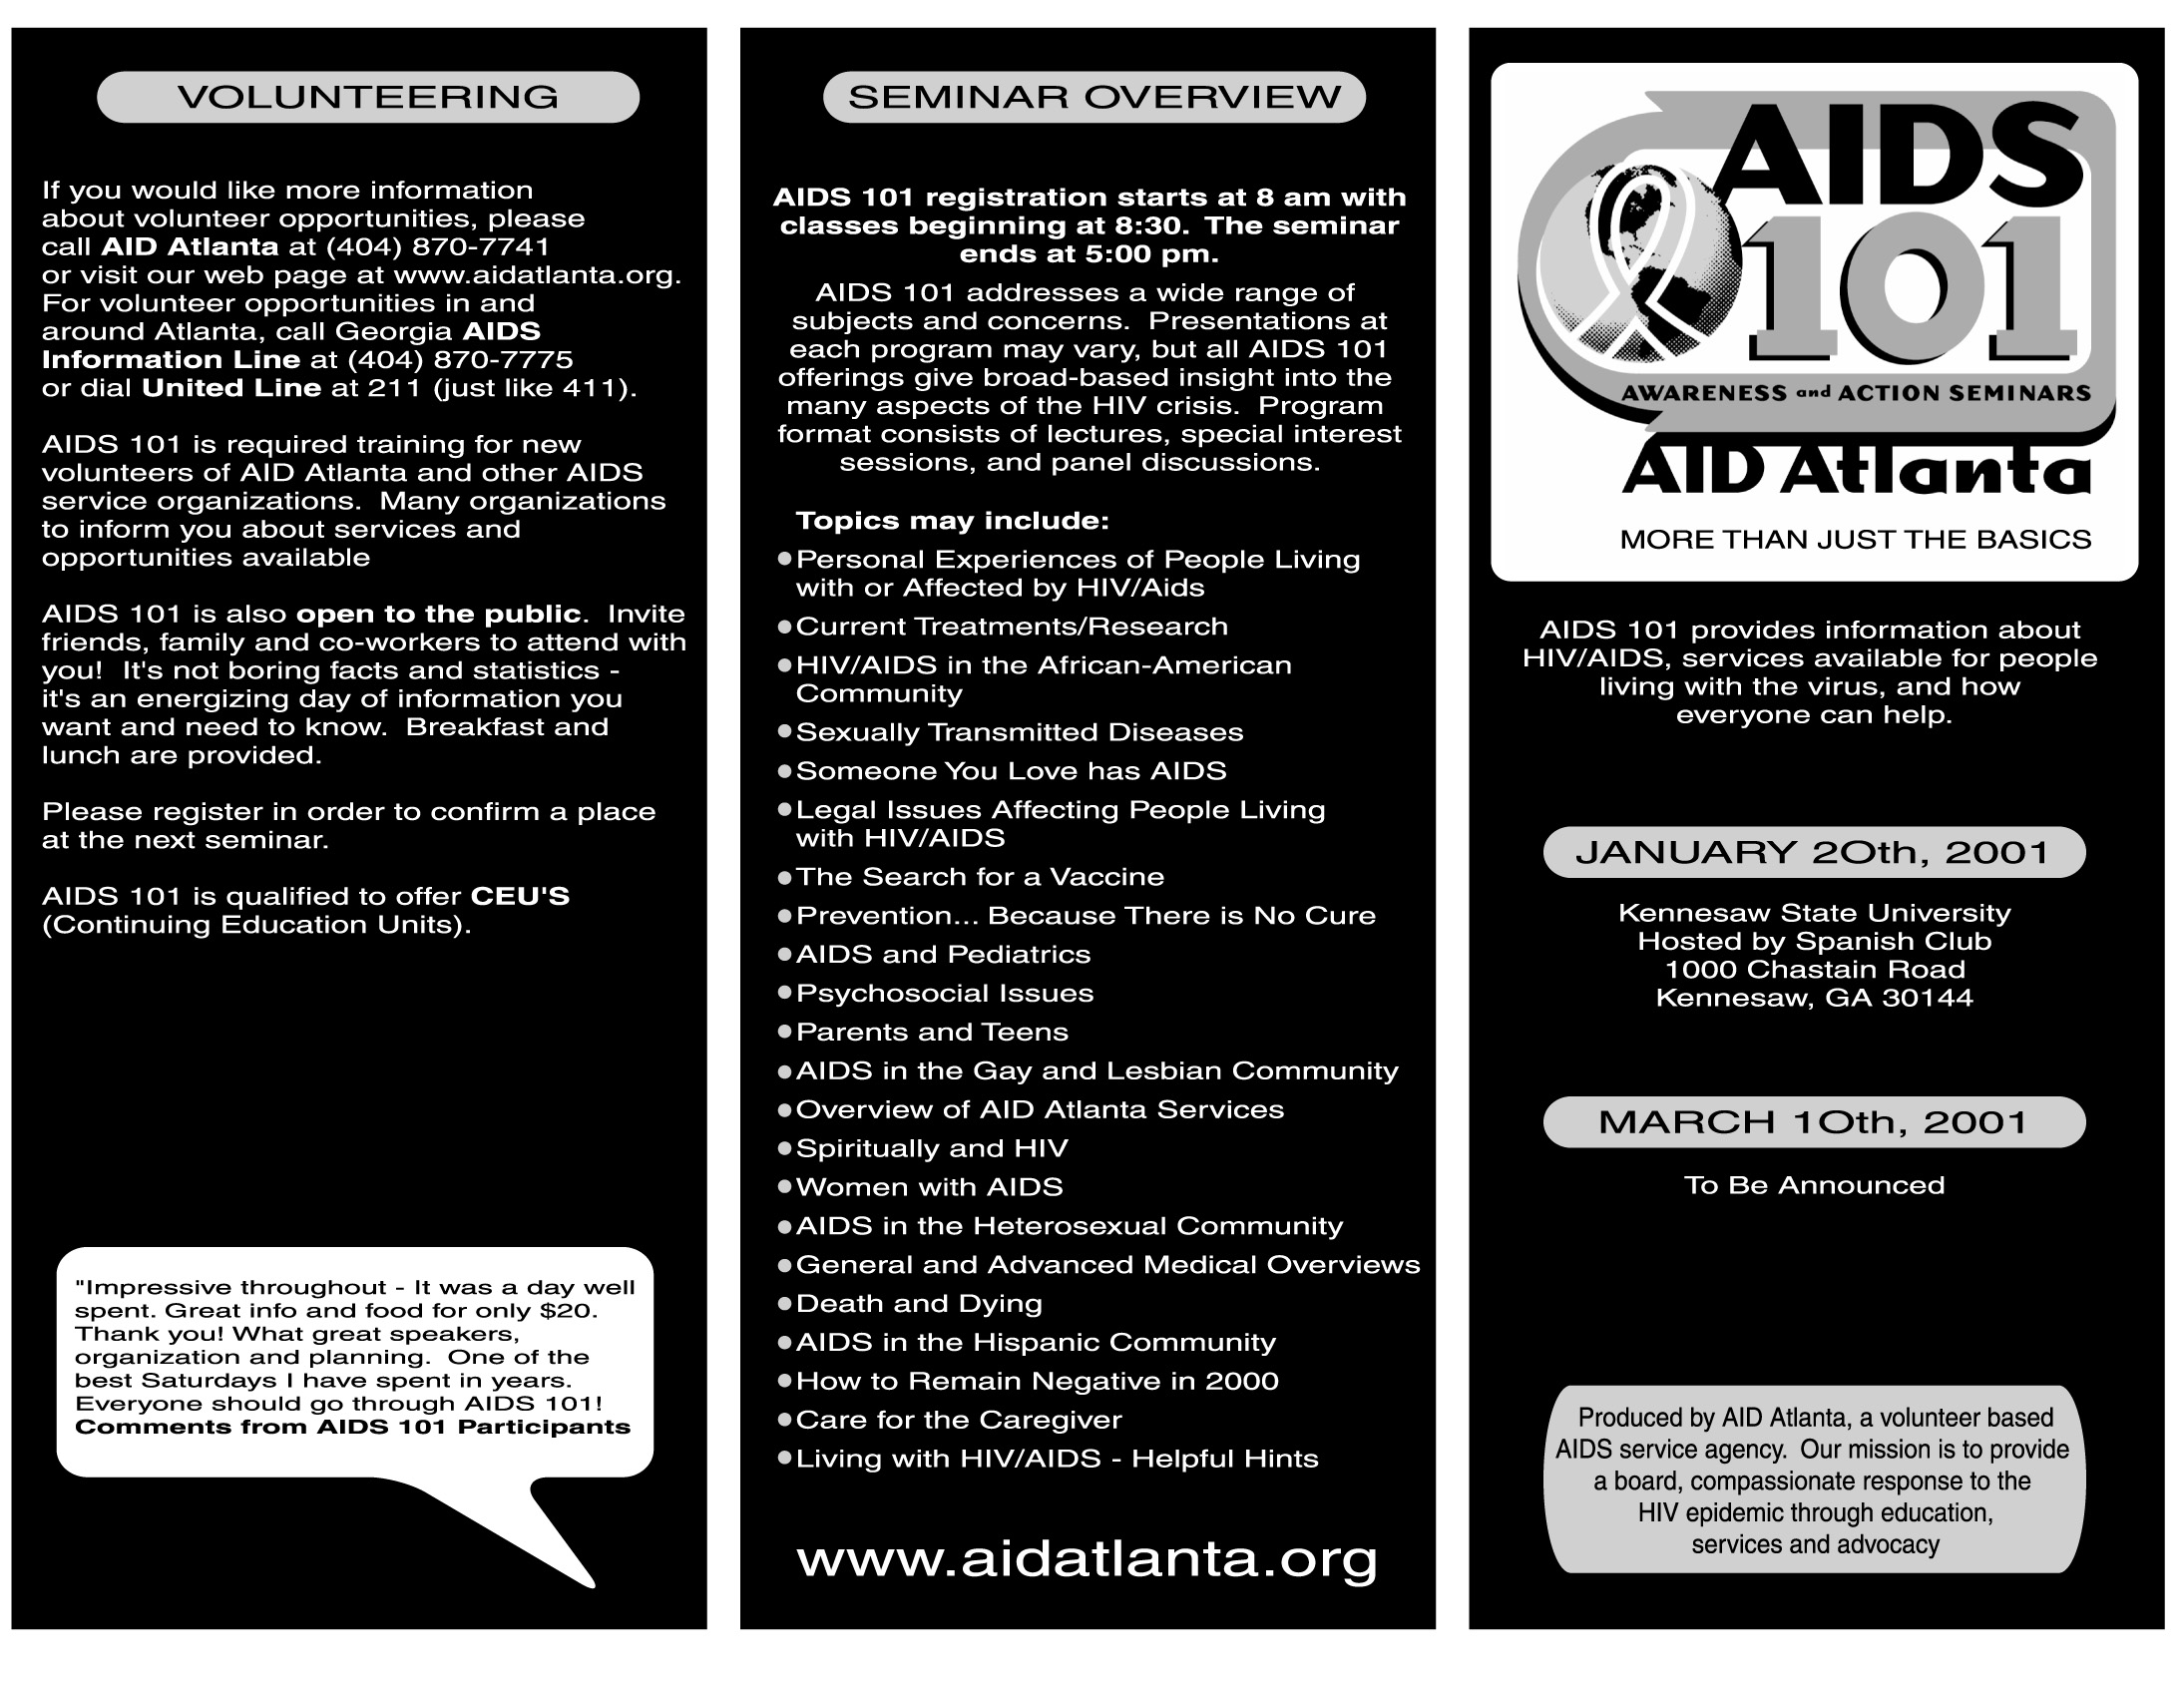 PUBLICATION: Aid Atlanta